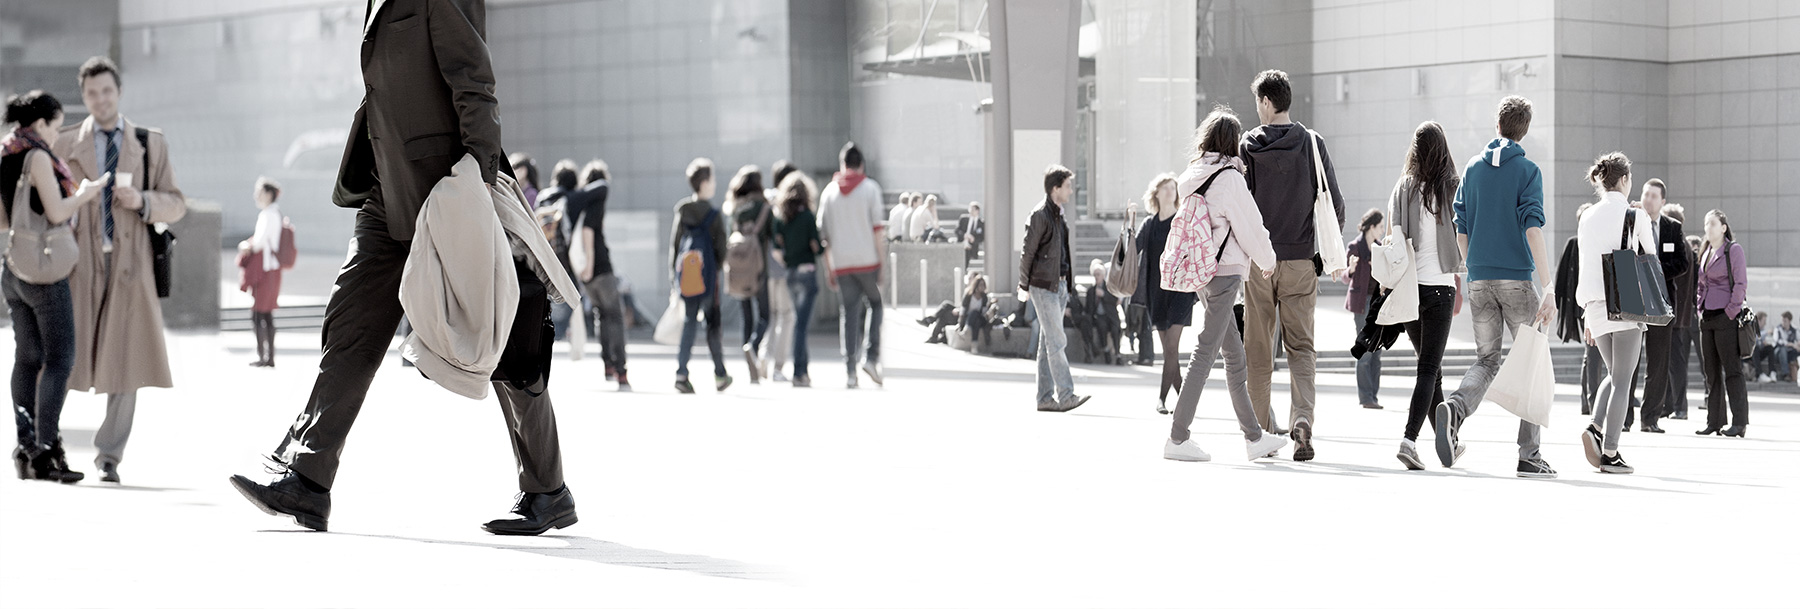 people walking background